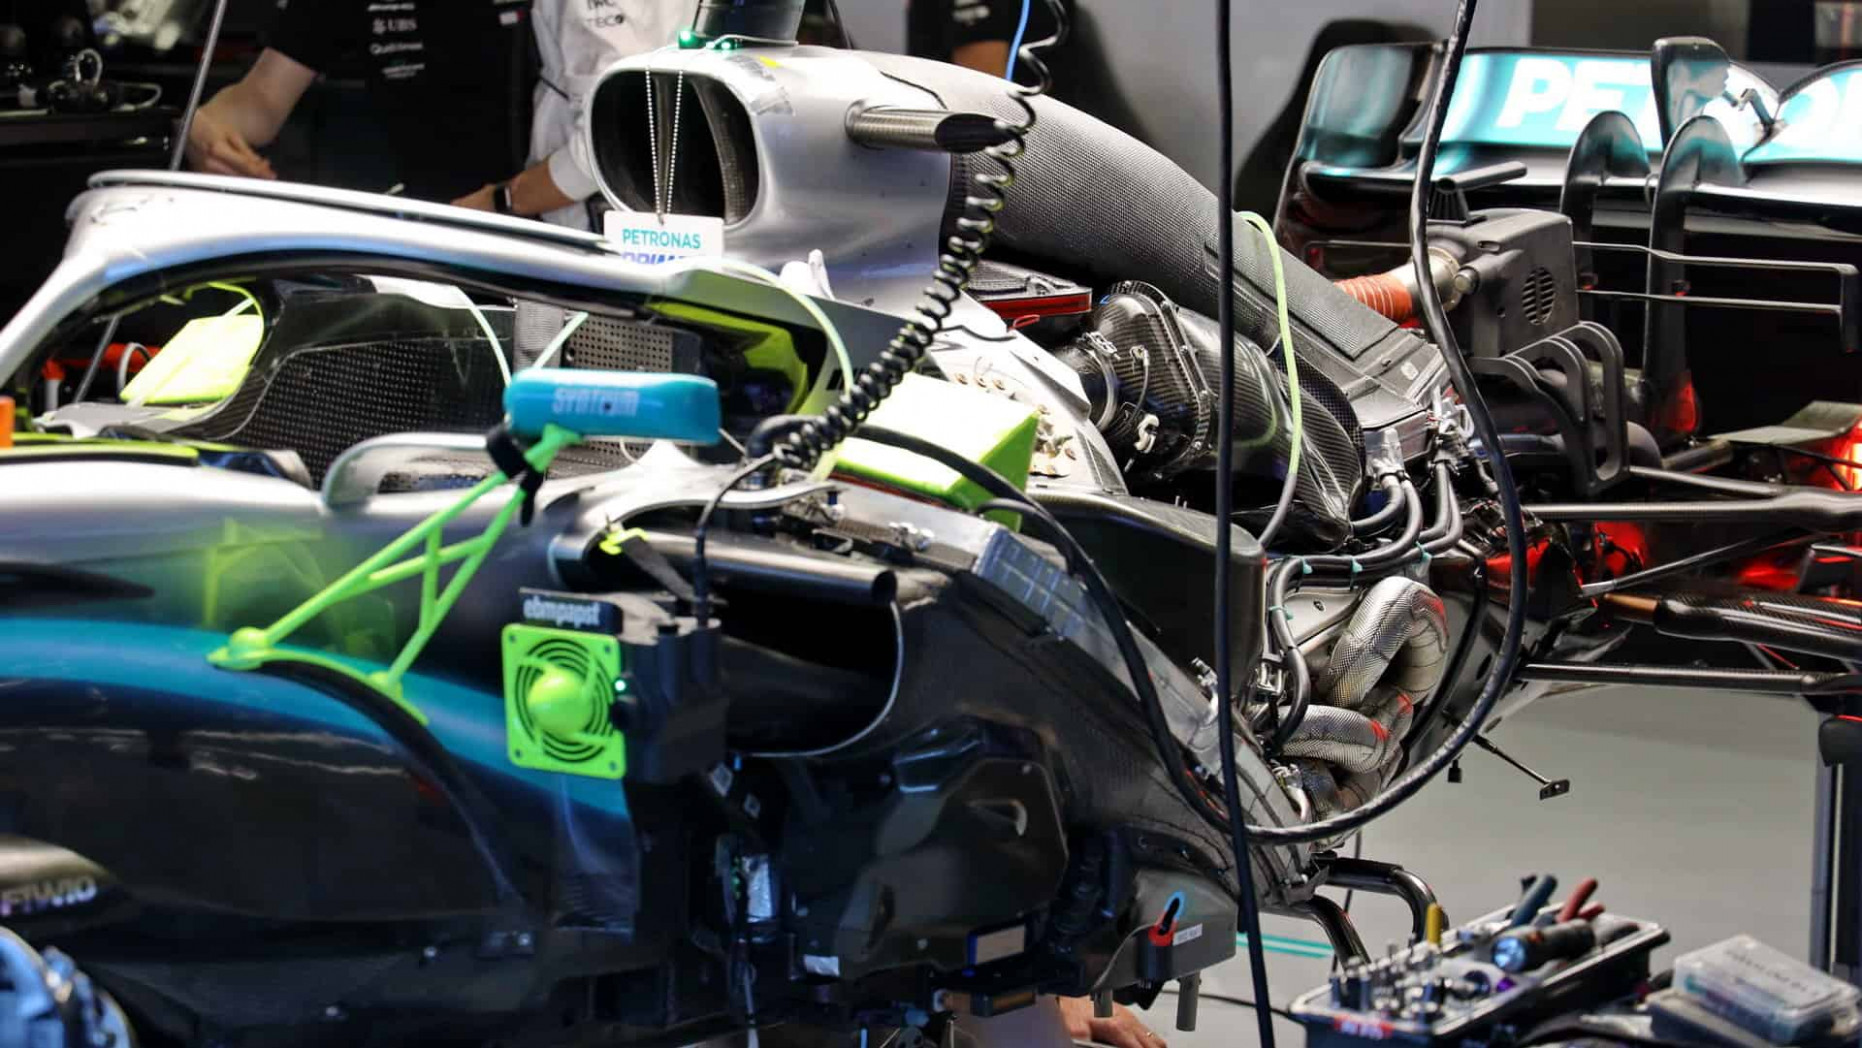 Mercedes, McLaren and Ferrari fire up their new 6 F6 cars - 2020 ferrari f1 engine